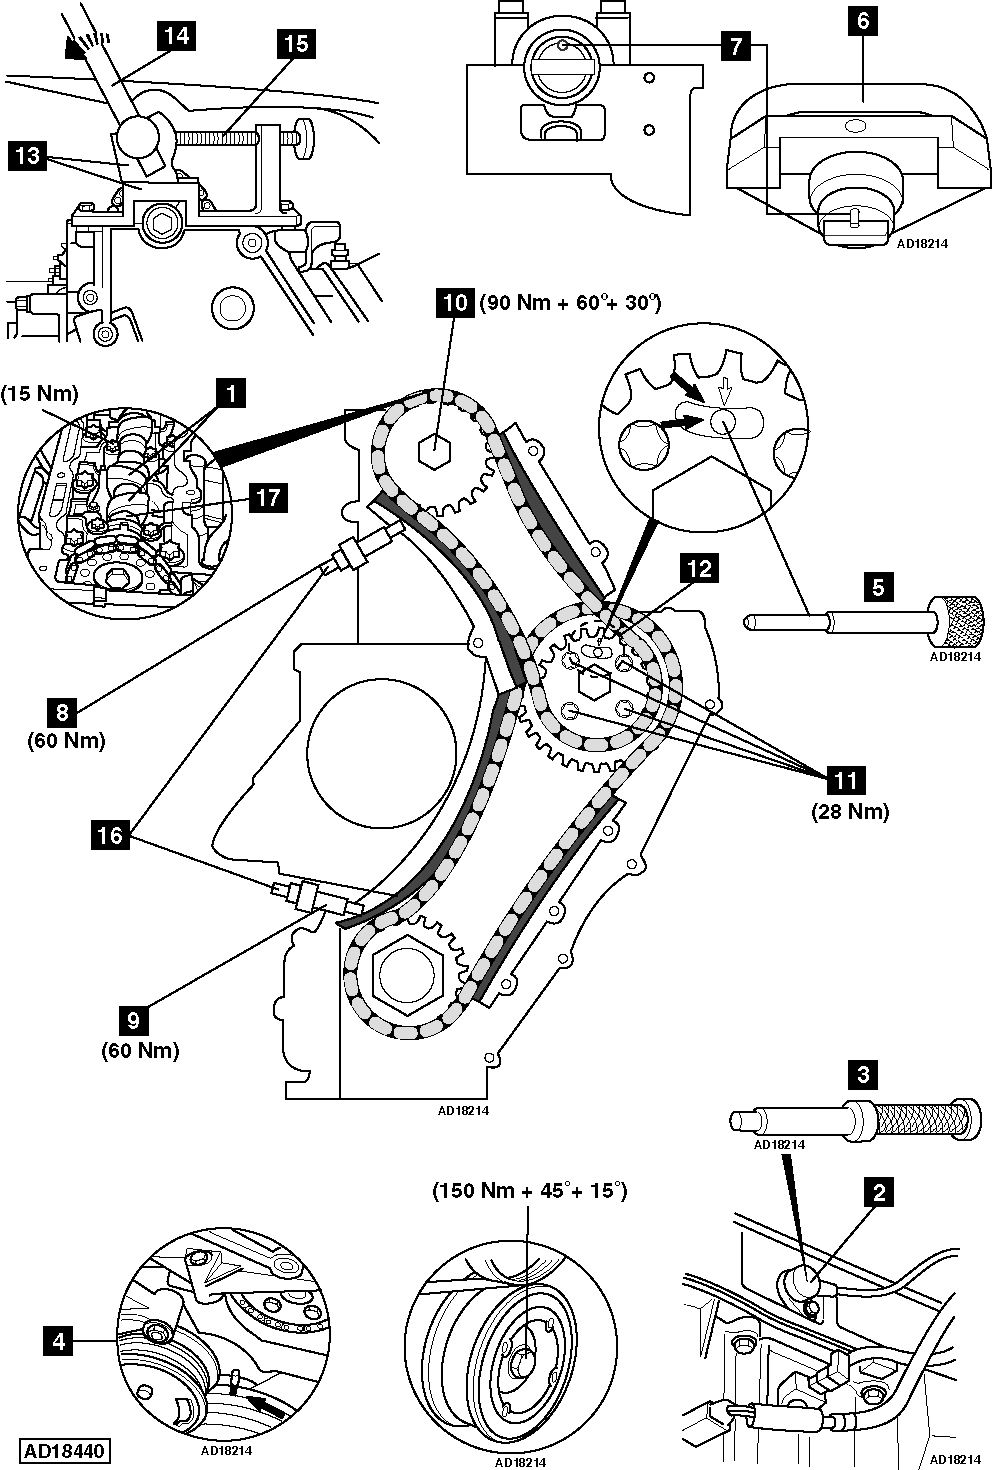 Discussion T26089 ds553247 further Dodge Factory Trailer Plug Wiring Diagram 1999 besides 5hoef Dodge Grand Caravan Es 2001 Dodge Caravan Es Awd 3 8l besides 4f598 Dodge Caravan Dodge Caravan 2001 Problems in addition Dodge Caravan 1991 Dodge Caravan Starter Relay Switch. on 2005 caravan fuse box location